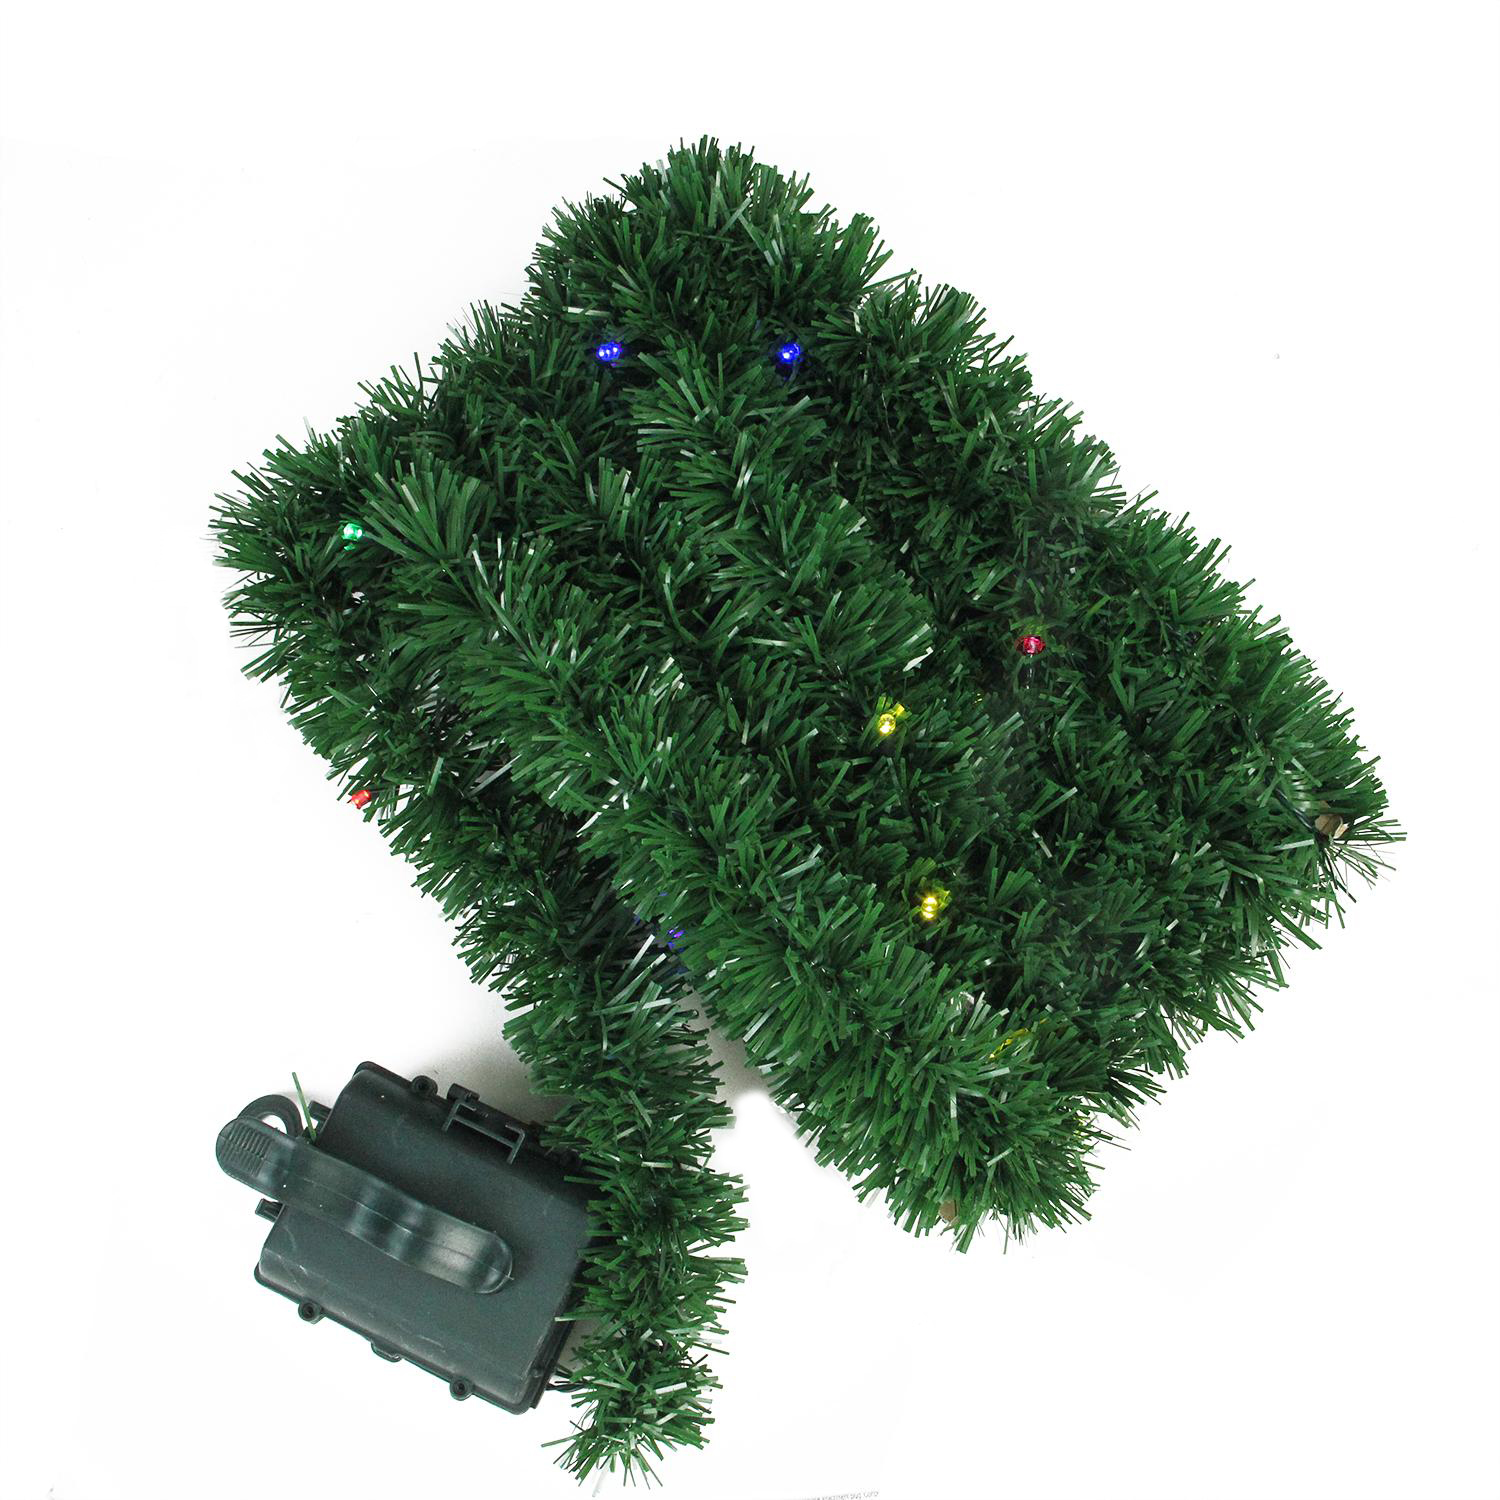 Artificial Christmas Garland.Details About Brite Star 18 B O Green Pine Artificial Christmas Garland Multi Twinkle Light